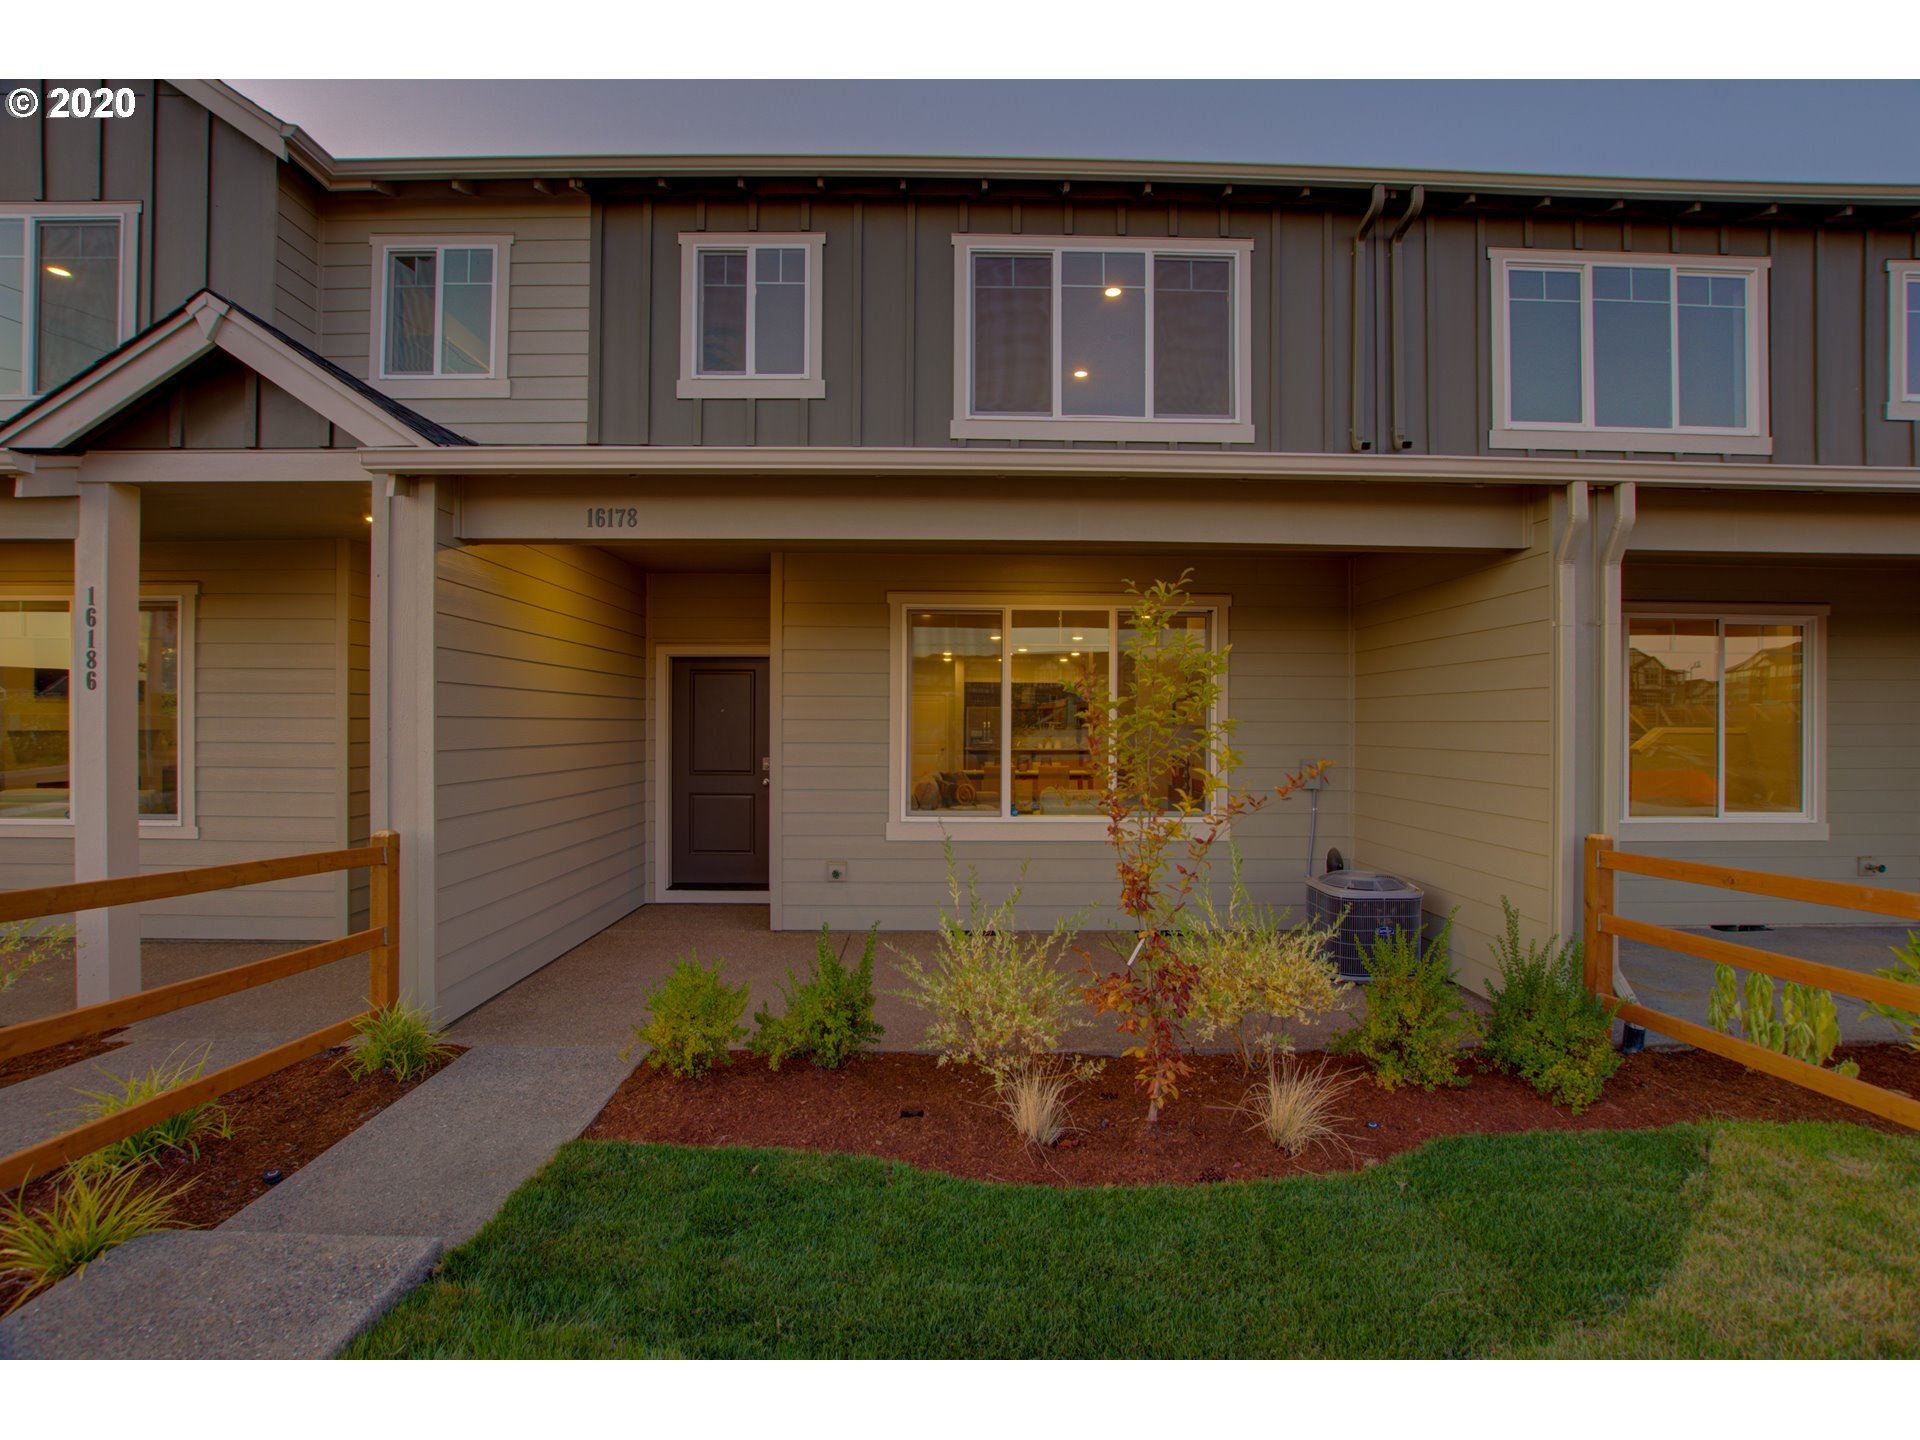 16146 NW RELIANCE LN #30, Portland, OR 97229 - MLS#: 20621362